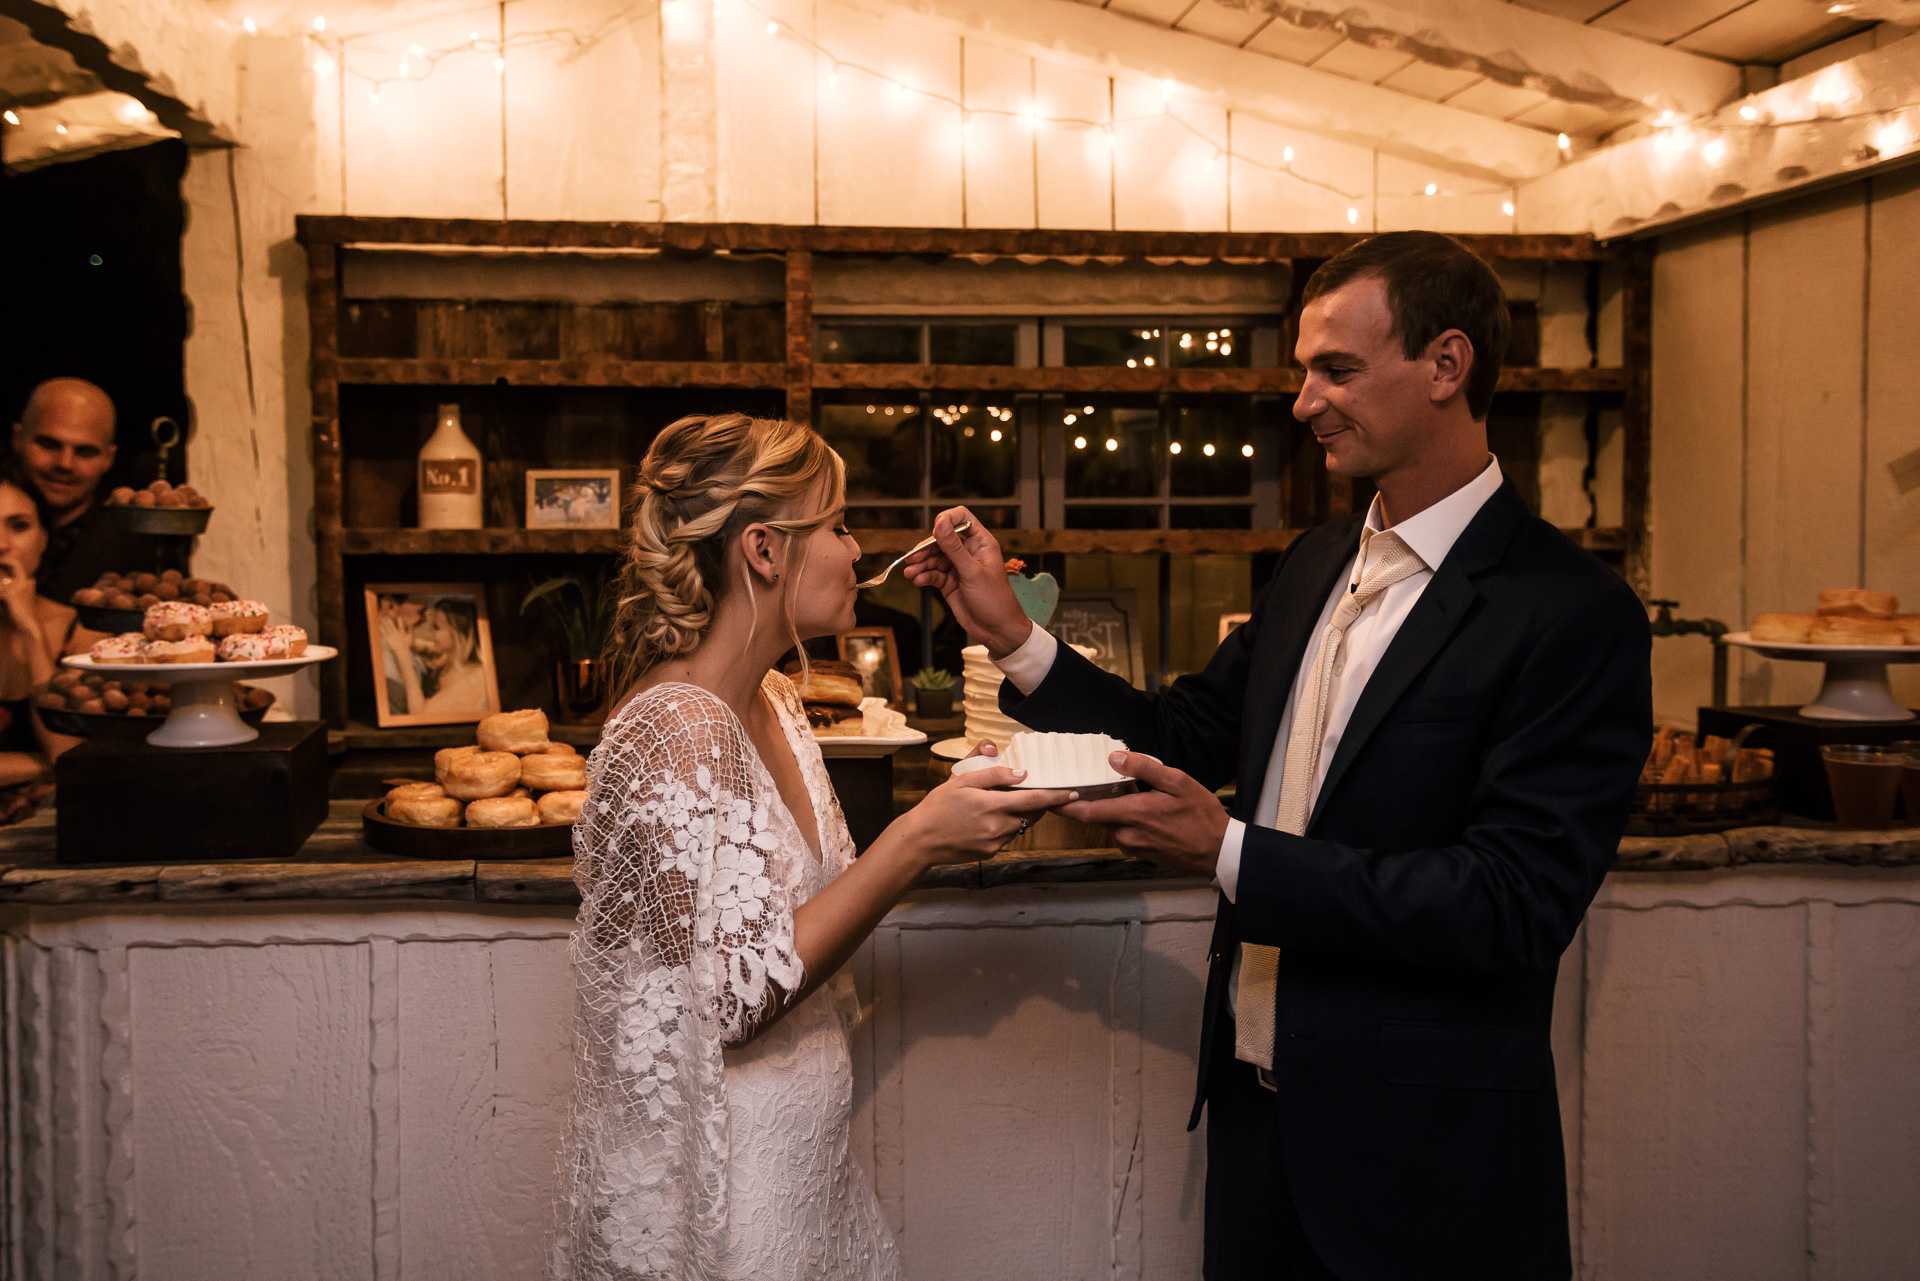 groom feeds his new wife cake captured by photographer during romantic wedding at the historic Leo Carrillo Ranch in Carlsbad California